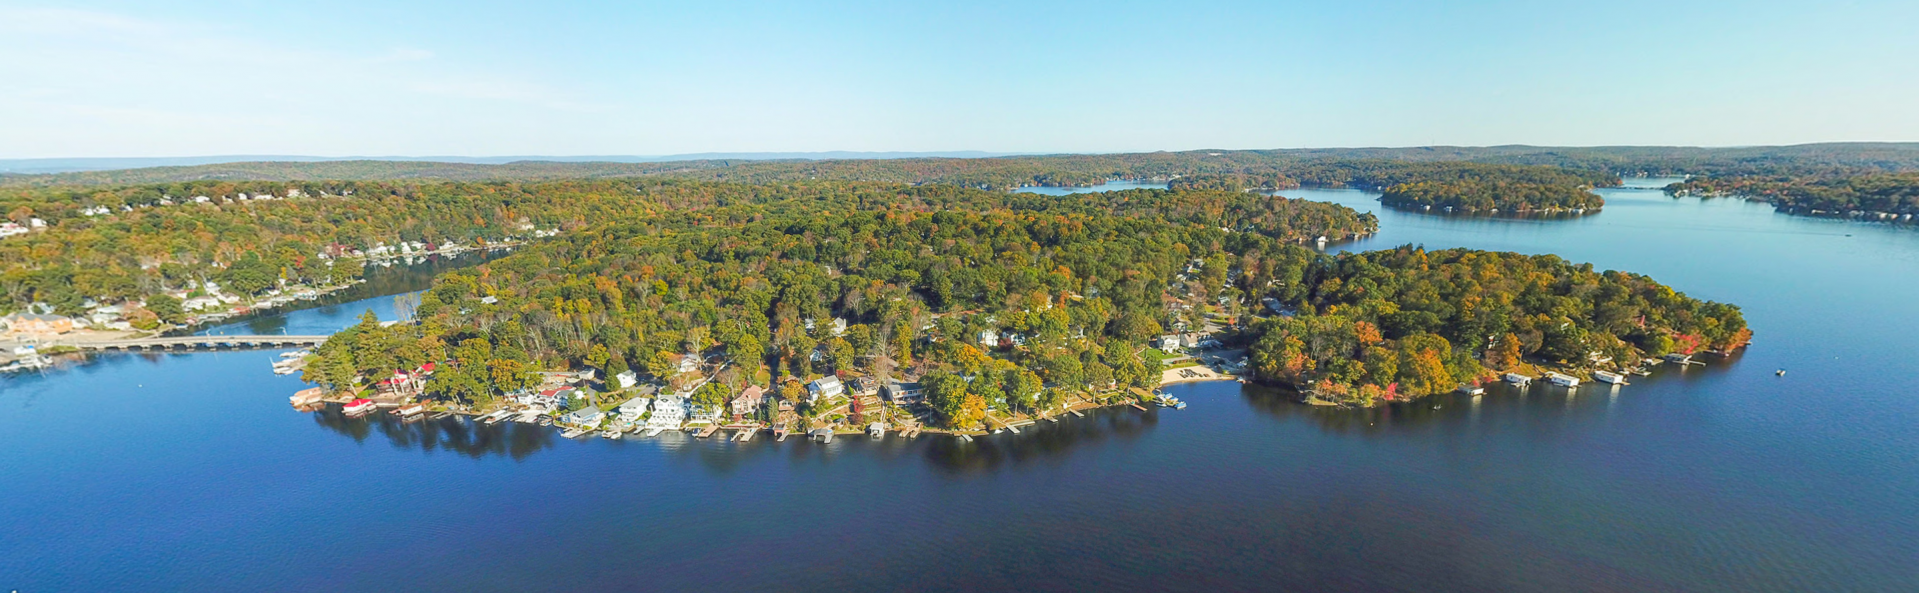 NJ DEP Issues Advisory for Lake Hopatcong